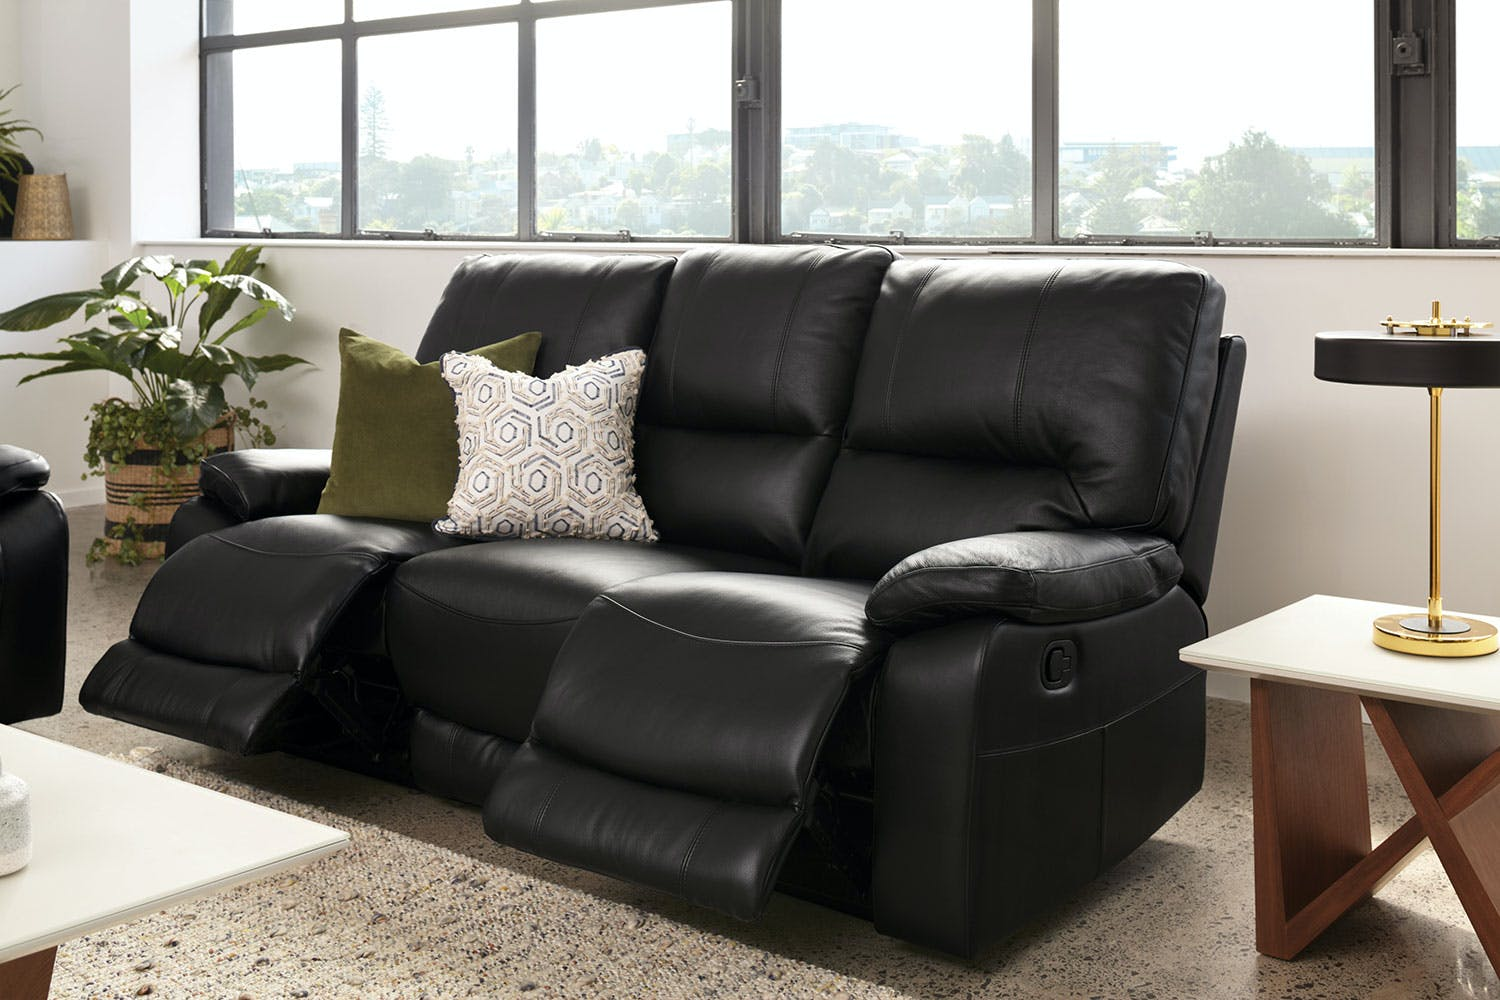 Waterford 3 Seater Leather Recliner Sofa